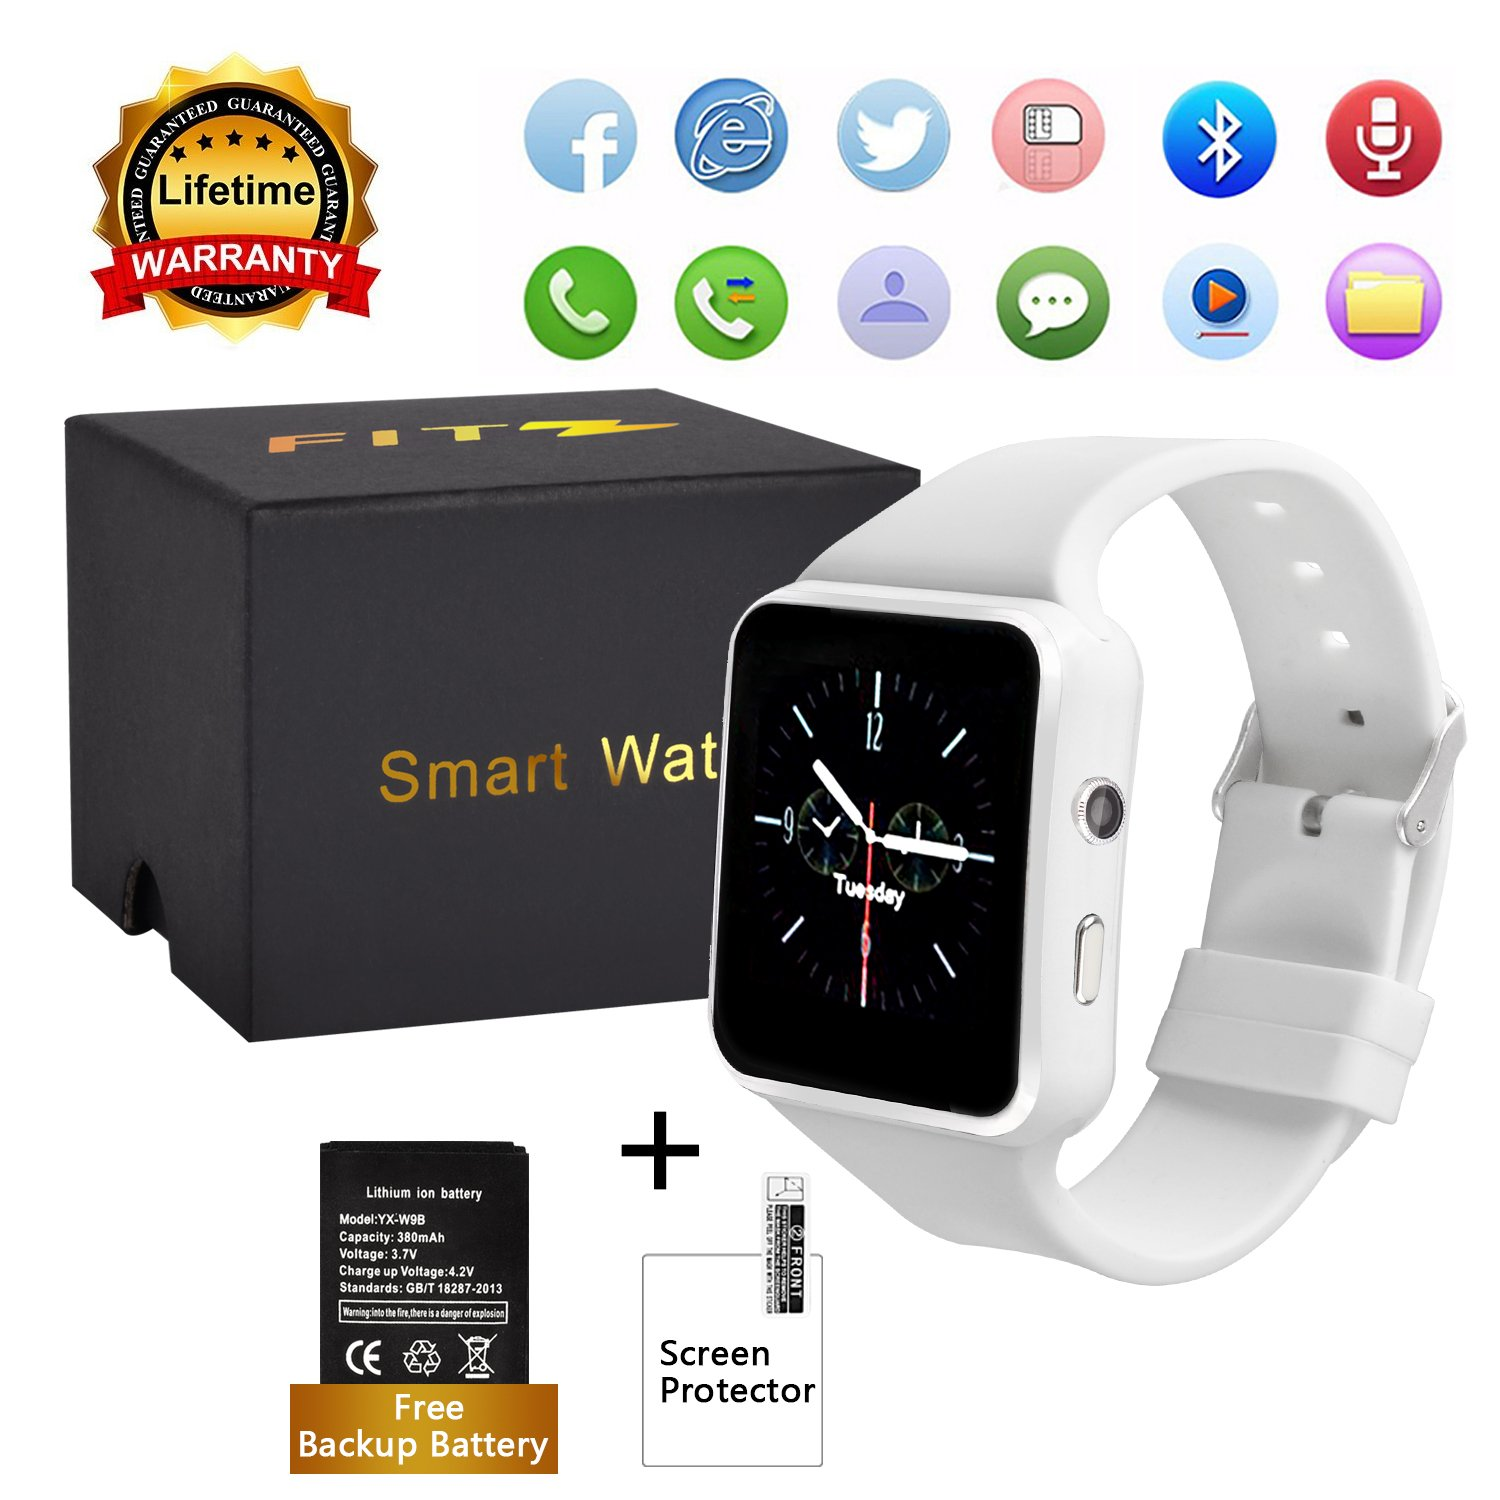 Upgraded Curved Touch Screen Bluetooth Smart Watch with Camera, Unlocked Watch Cell Phone Waterproof Smartwatch Phone for Android iOS Samsung iPhone ...